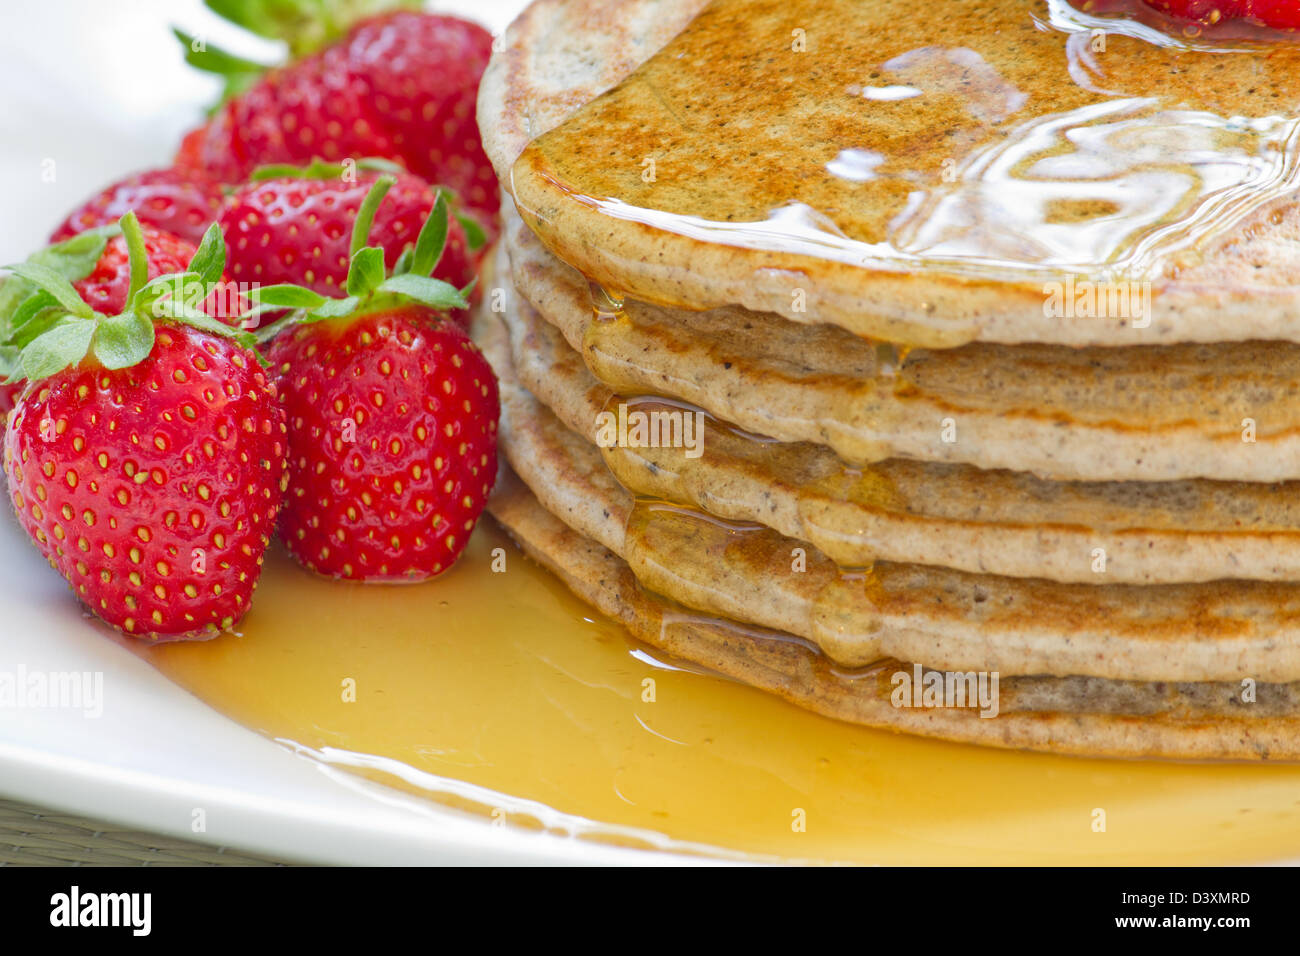 Pancakes closeup with a strawberry and maple syrup garnish. - Stock Image